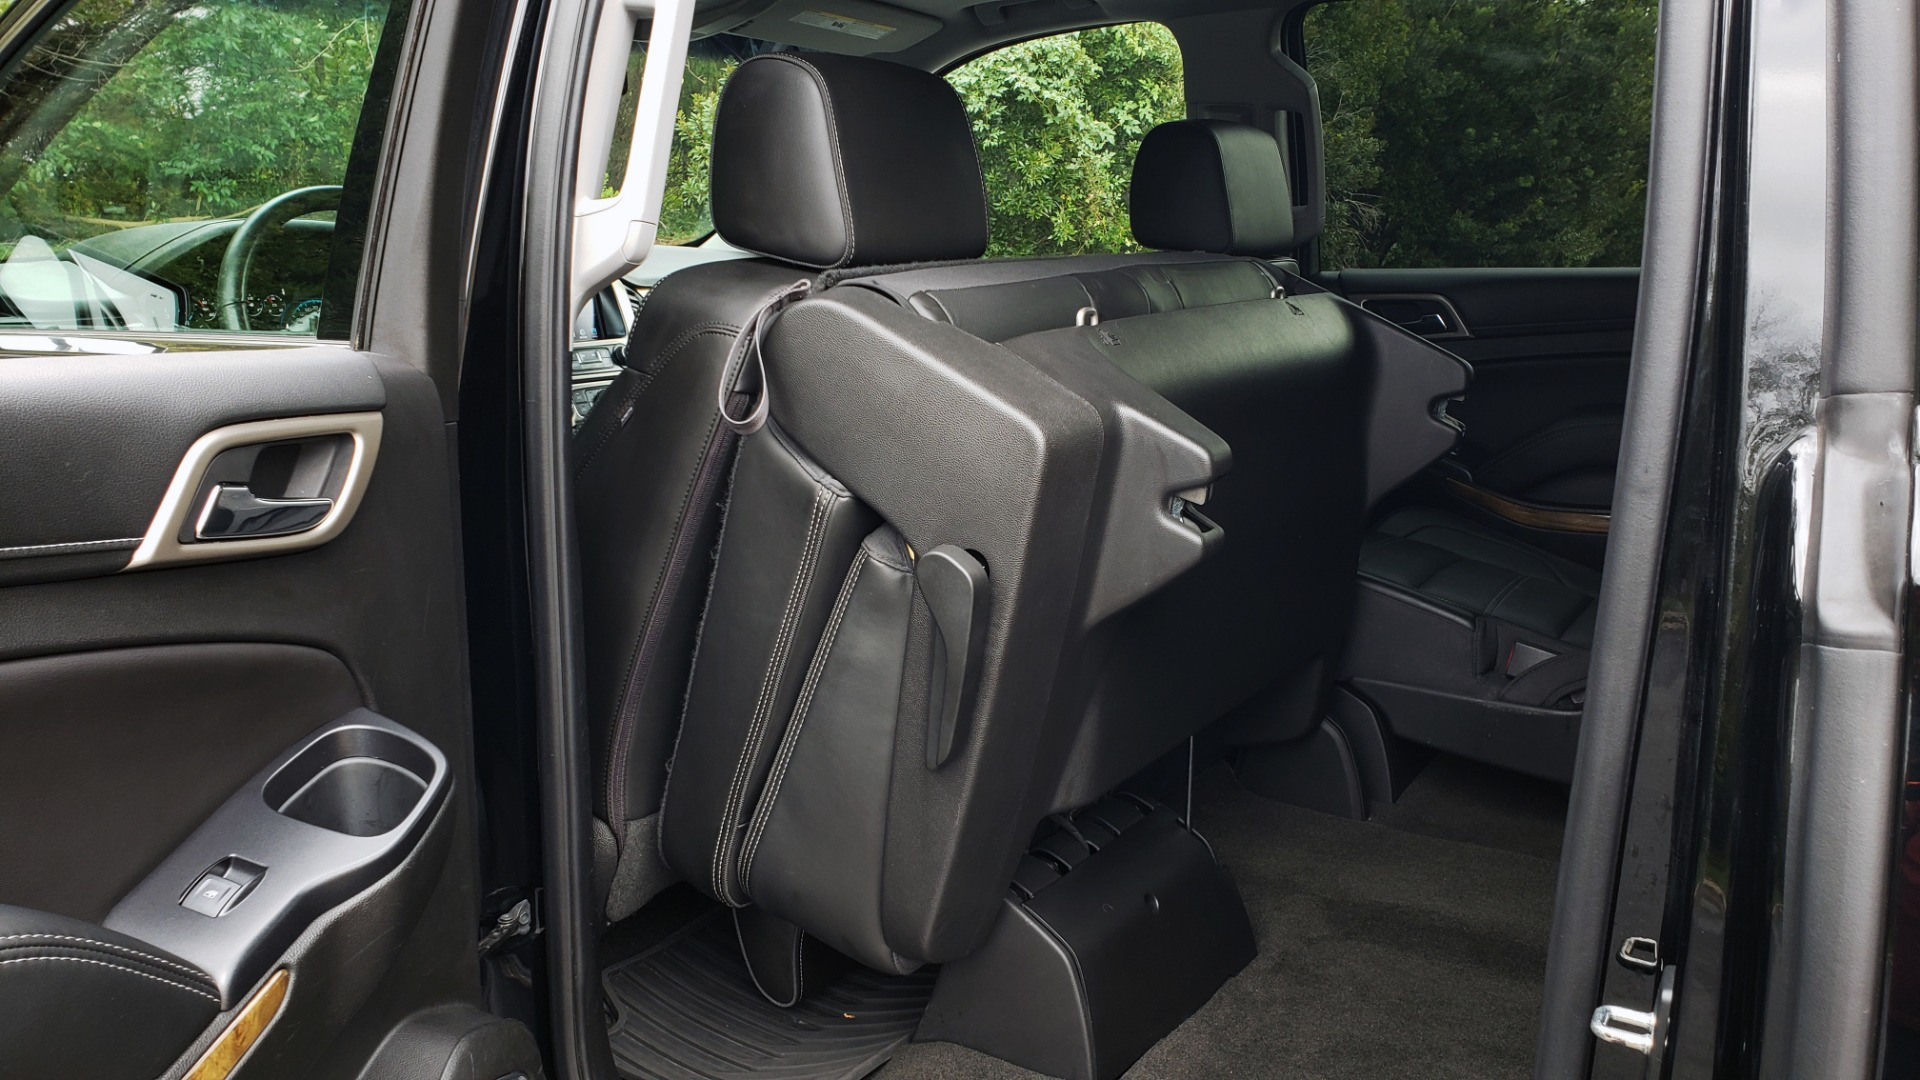 Used 2017 GMC YUKON XL DENALI 4WD / NAV / SUNROOF / ENT / 3-ROWS / BOSE / REARVIEW for sale $48,695 at Formula Imports in Charlotte NC 28227 69